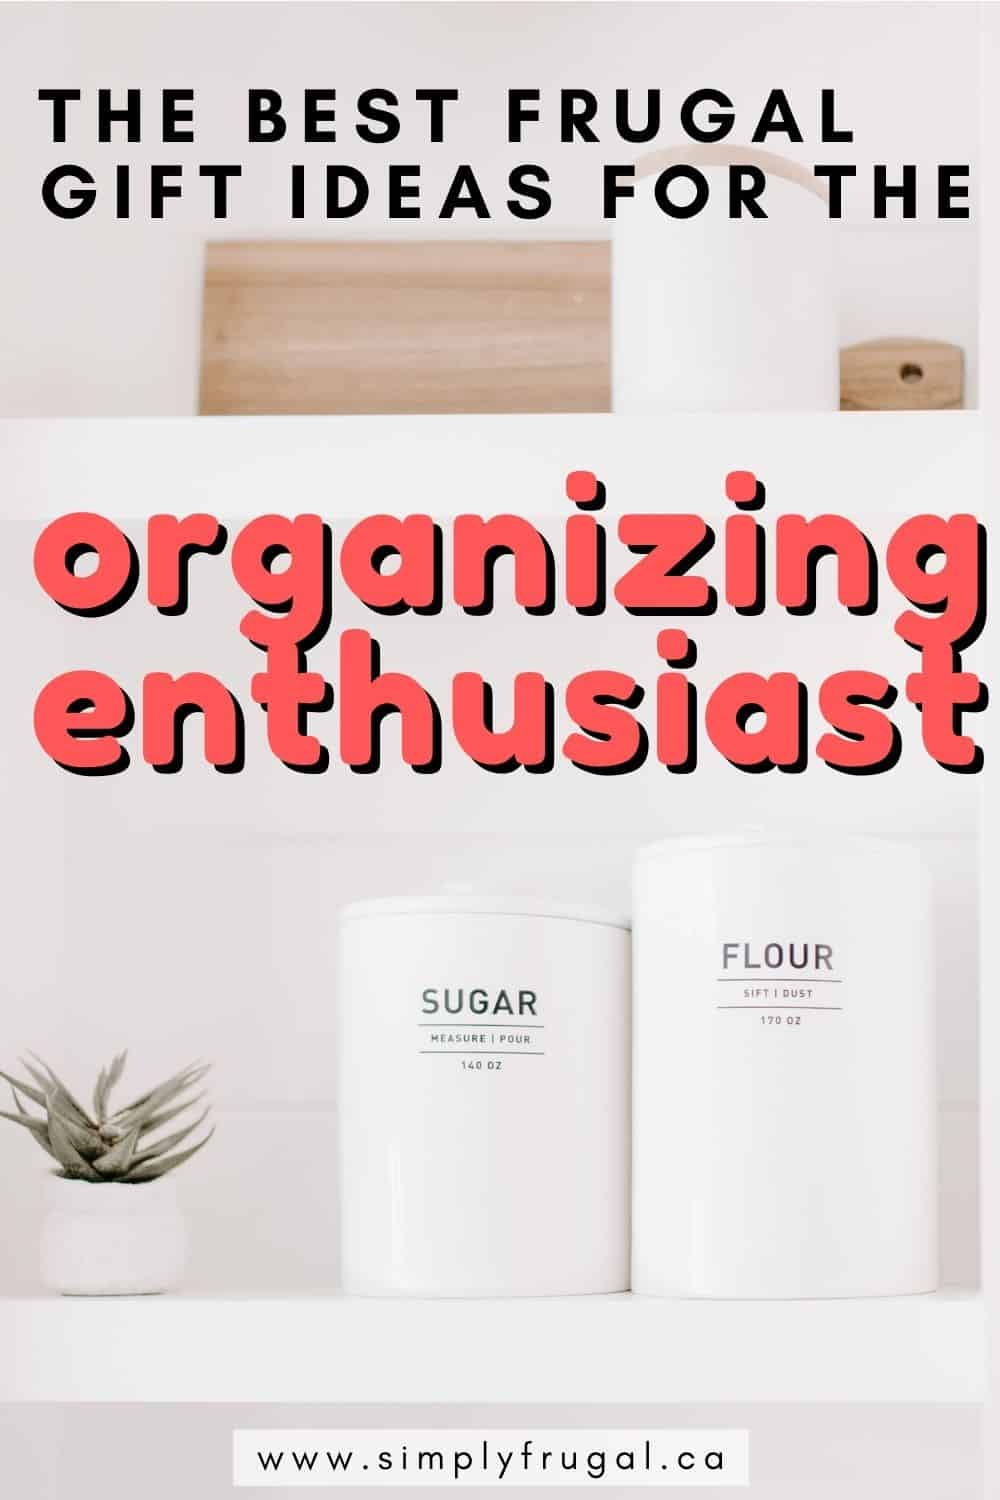 This gift guide is sure to give you some practical, but fun, ideas for the organizing enthusiast! Everything listed is very affordable too!